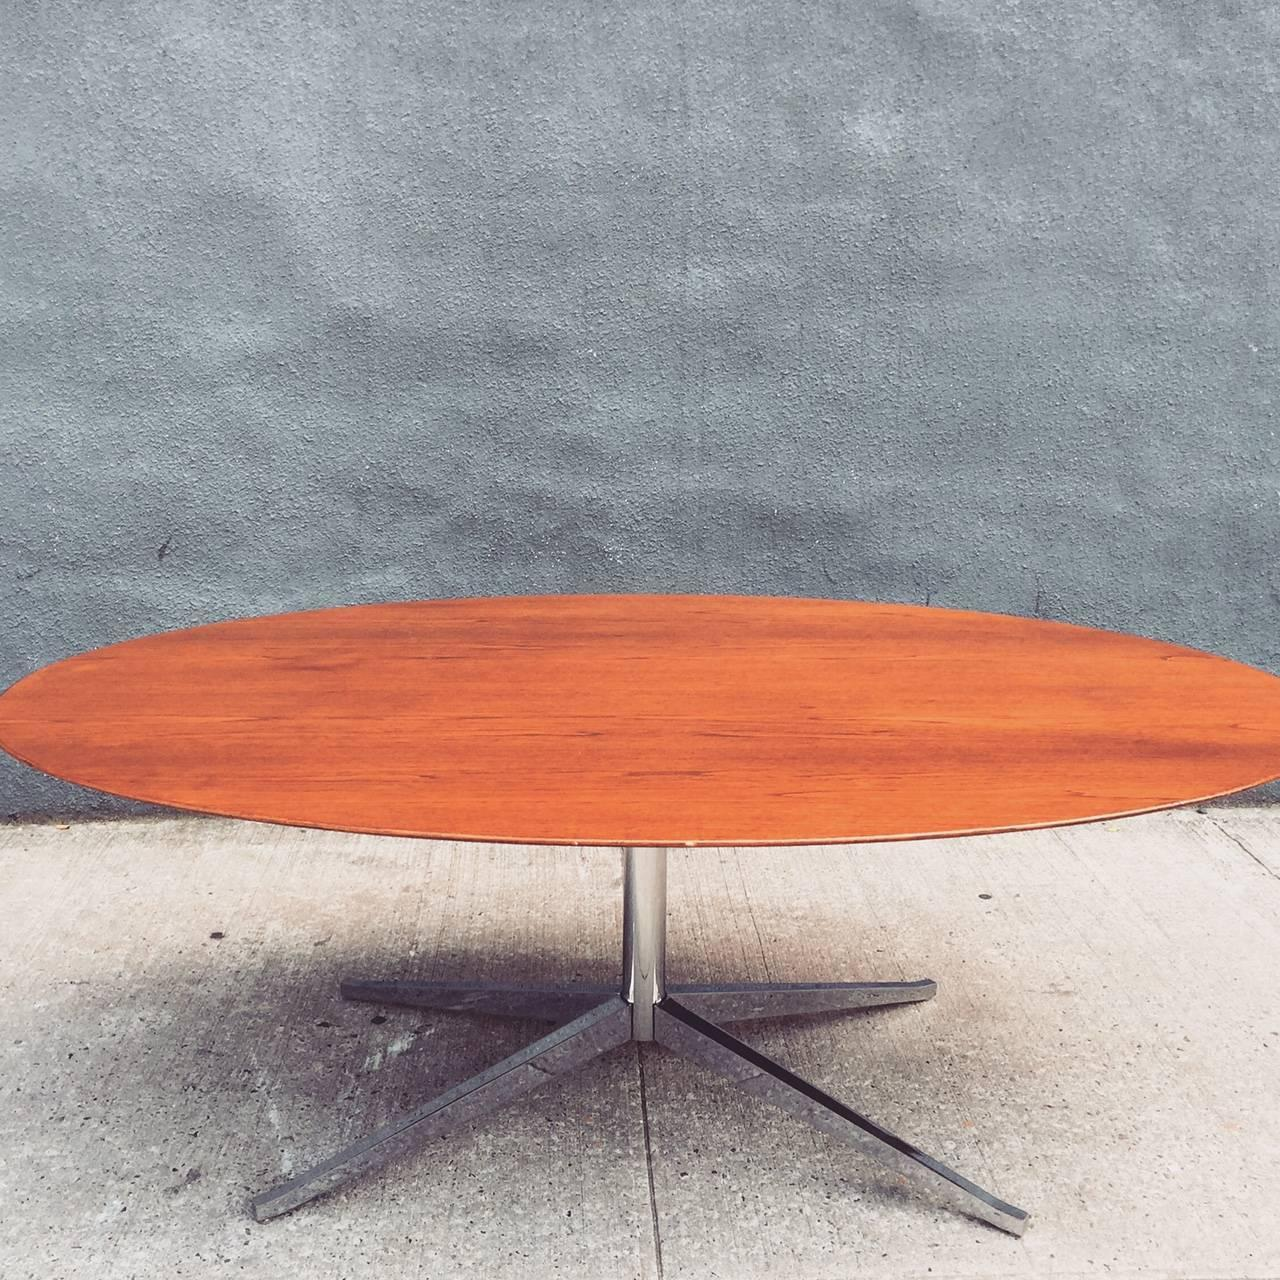 Florence Knoll Oval Table Desk in Brazilian Rosewood at